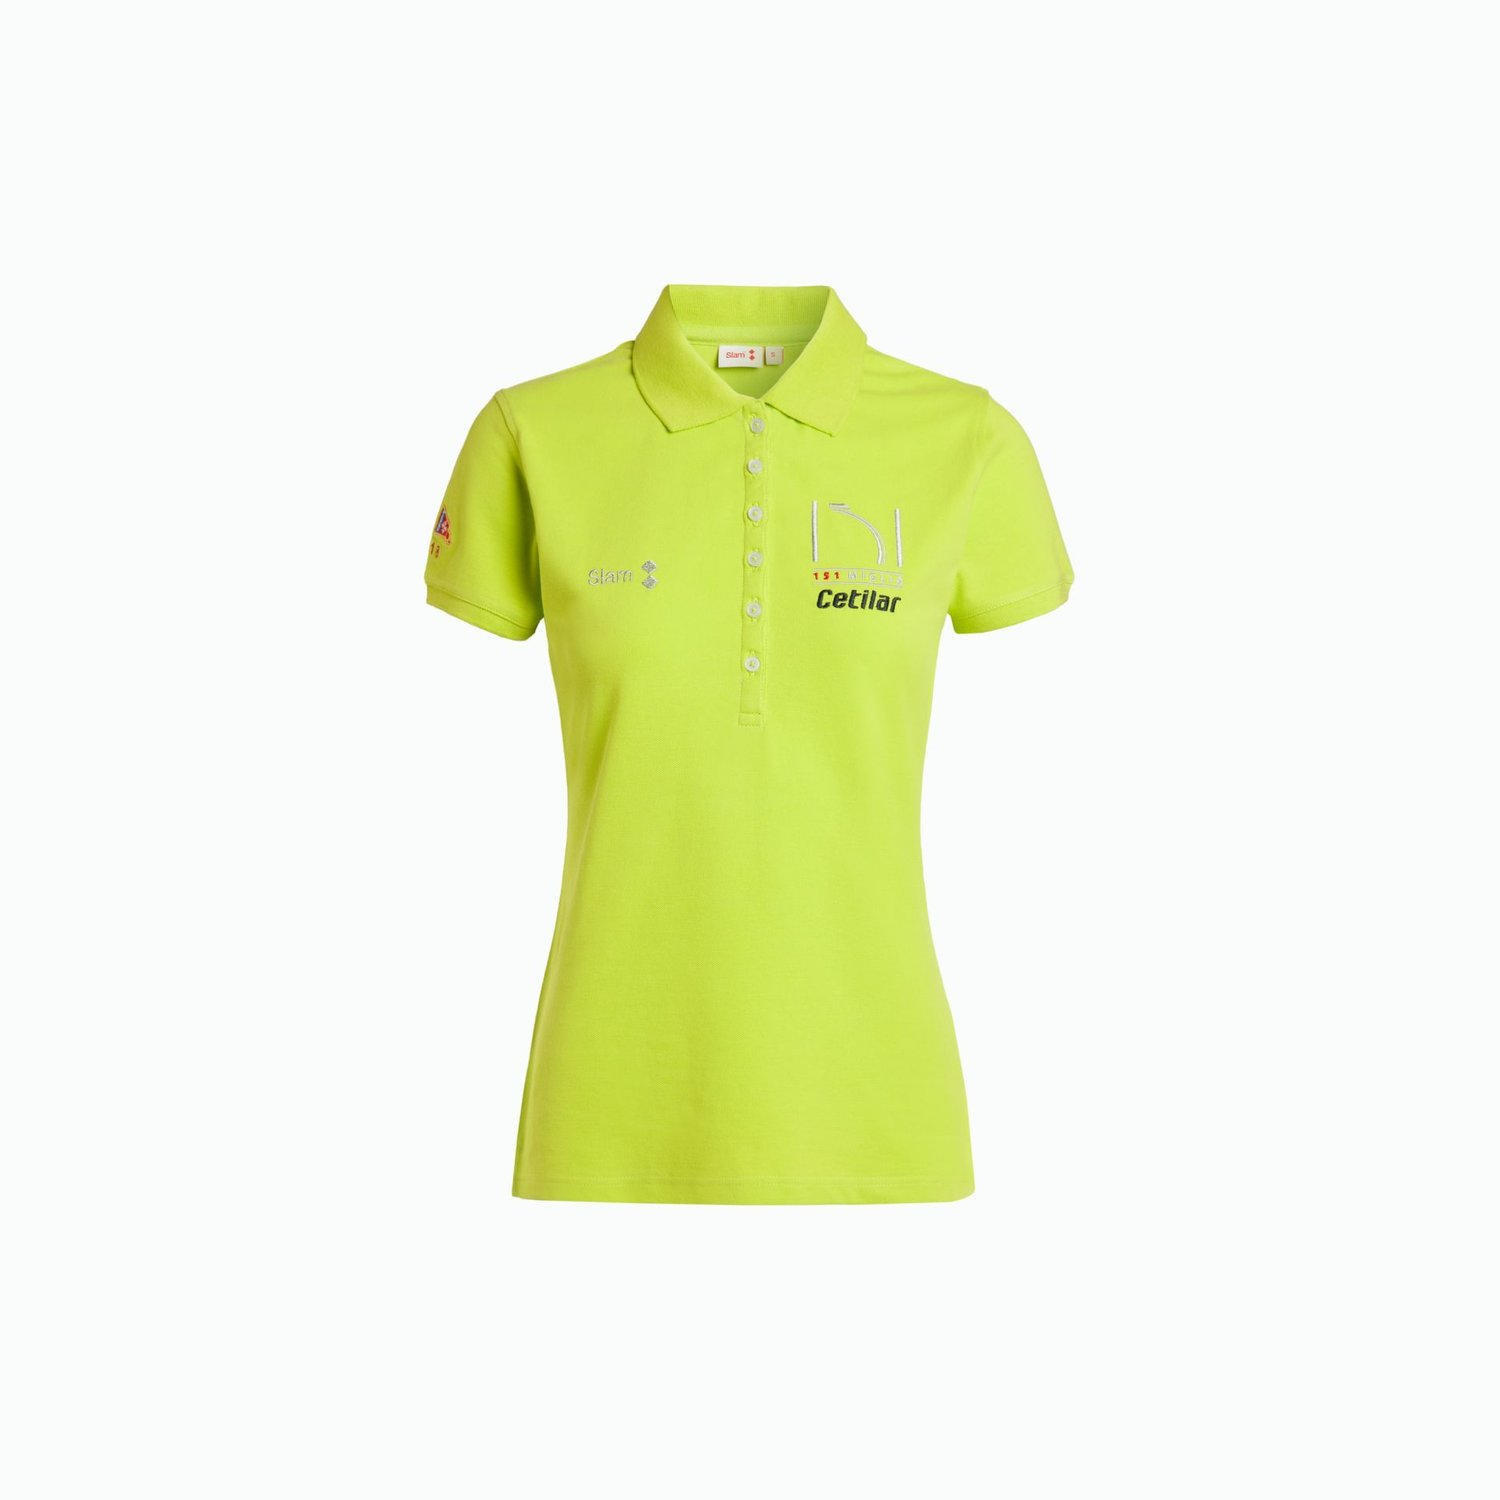 Women's Polo 151 Miglia 2018 - Yellow Neon